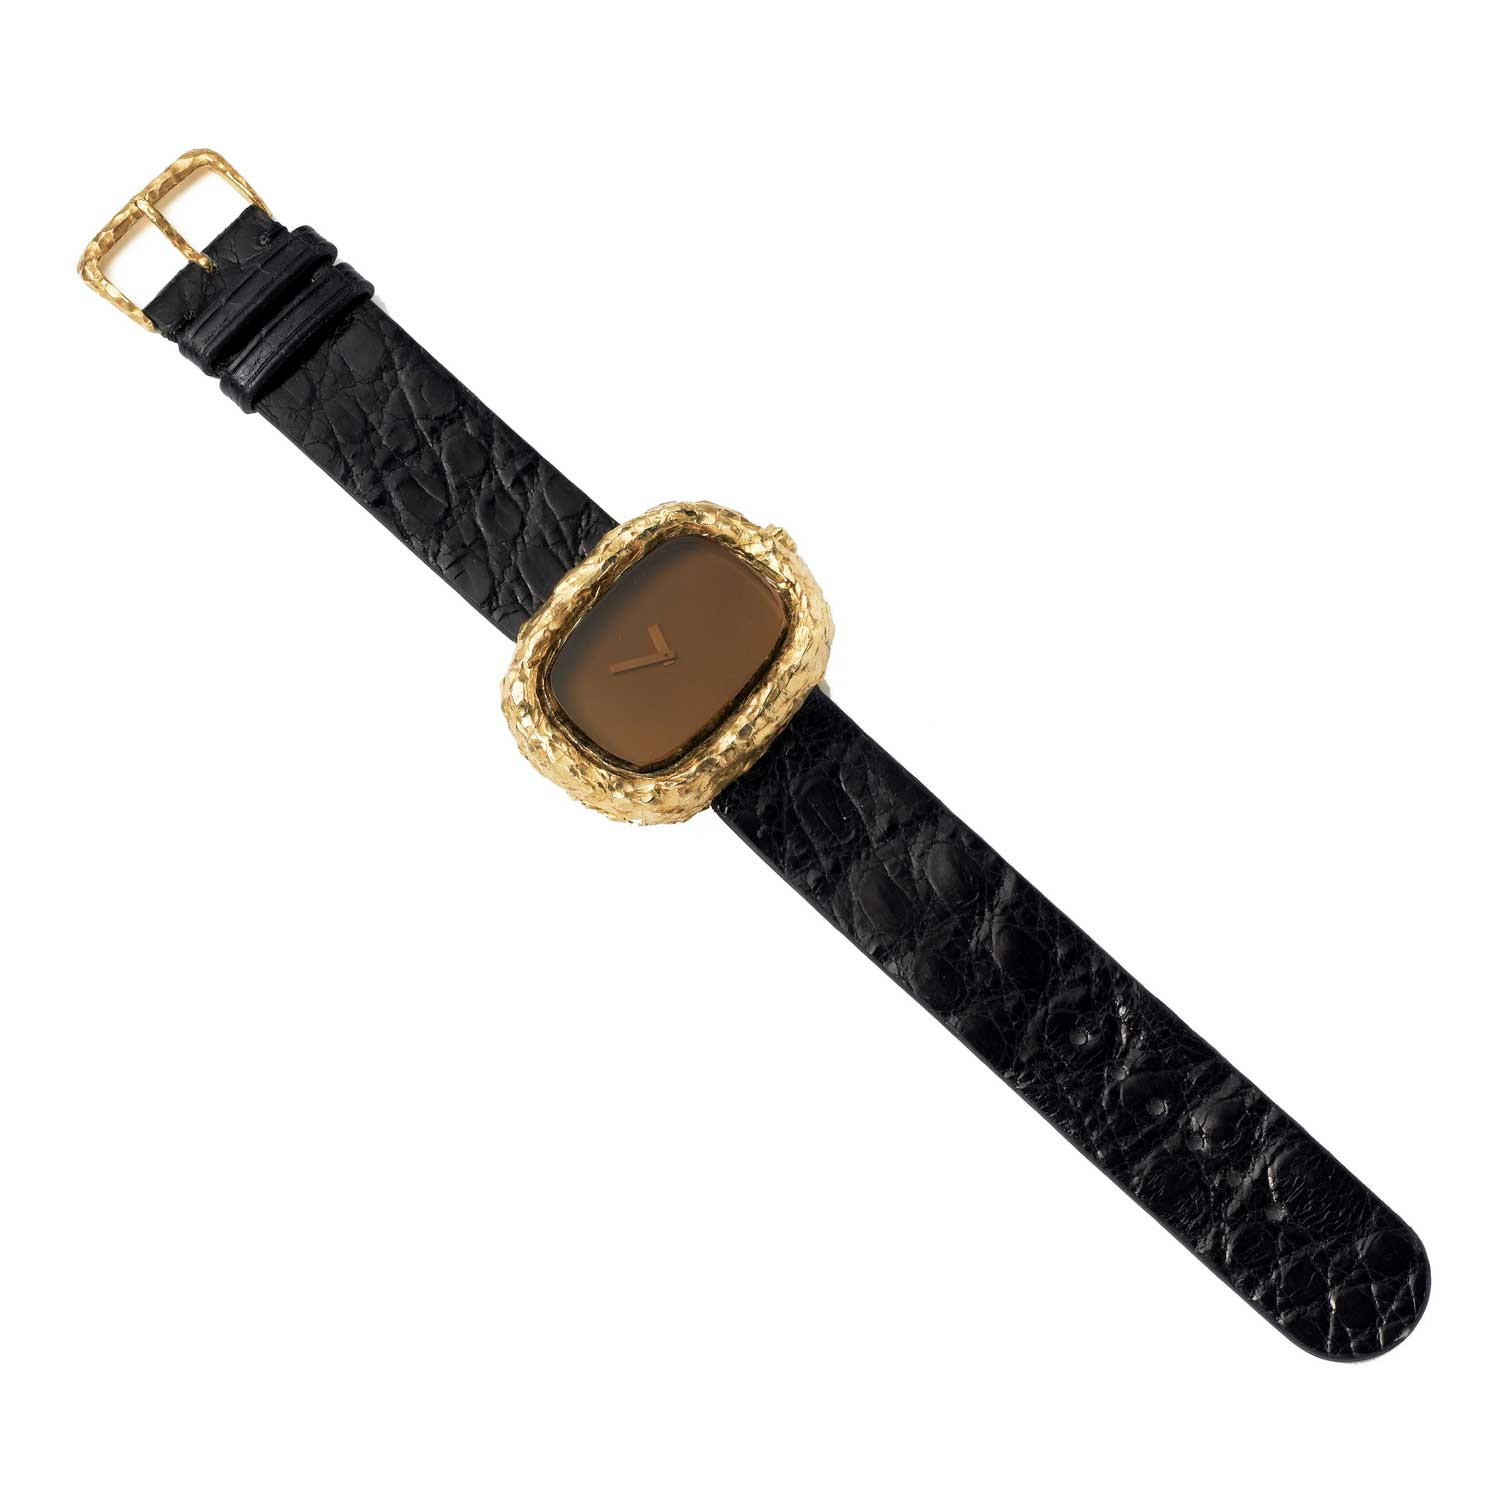 Teak is arguably the most personal Omega About Time design because it was the watch Andrew Grima wore until his death in 2007. Jojo Grima now wears the handsome unisex timepiece with smoky quartz face, rectangular beveled gold case and integral chocolate crocodile strap...